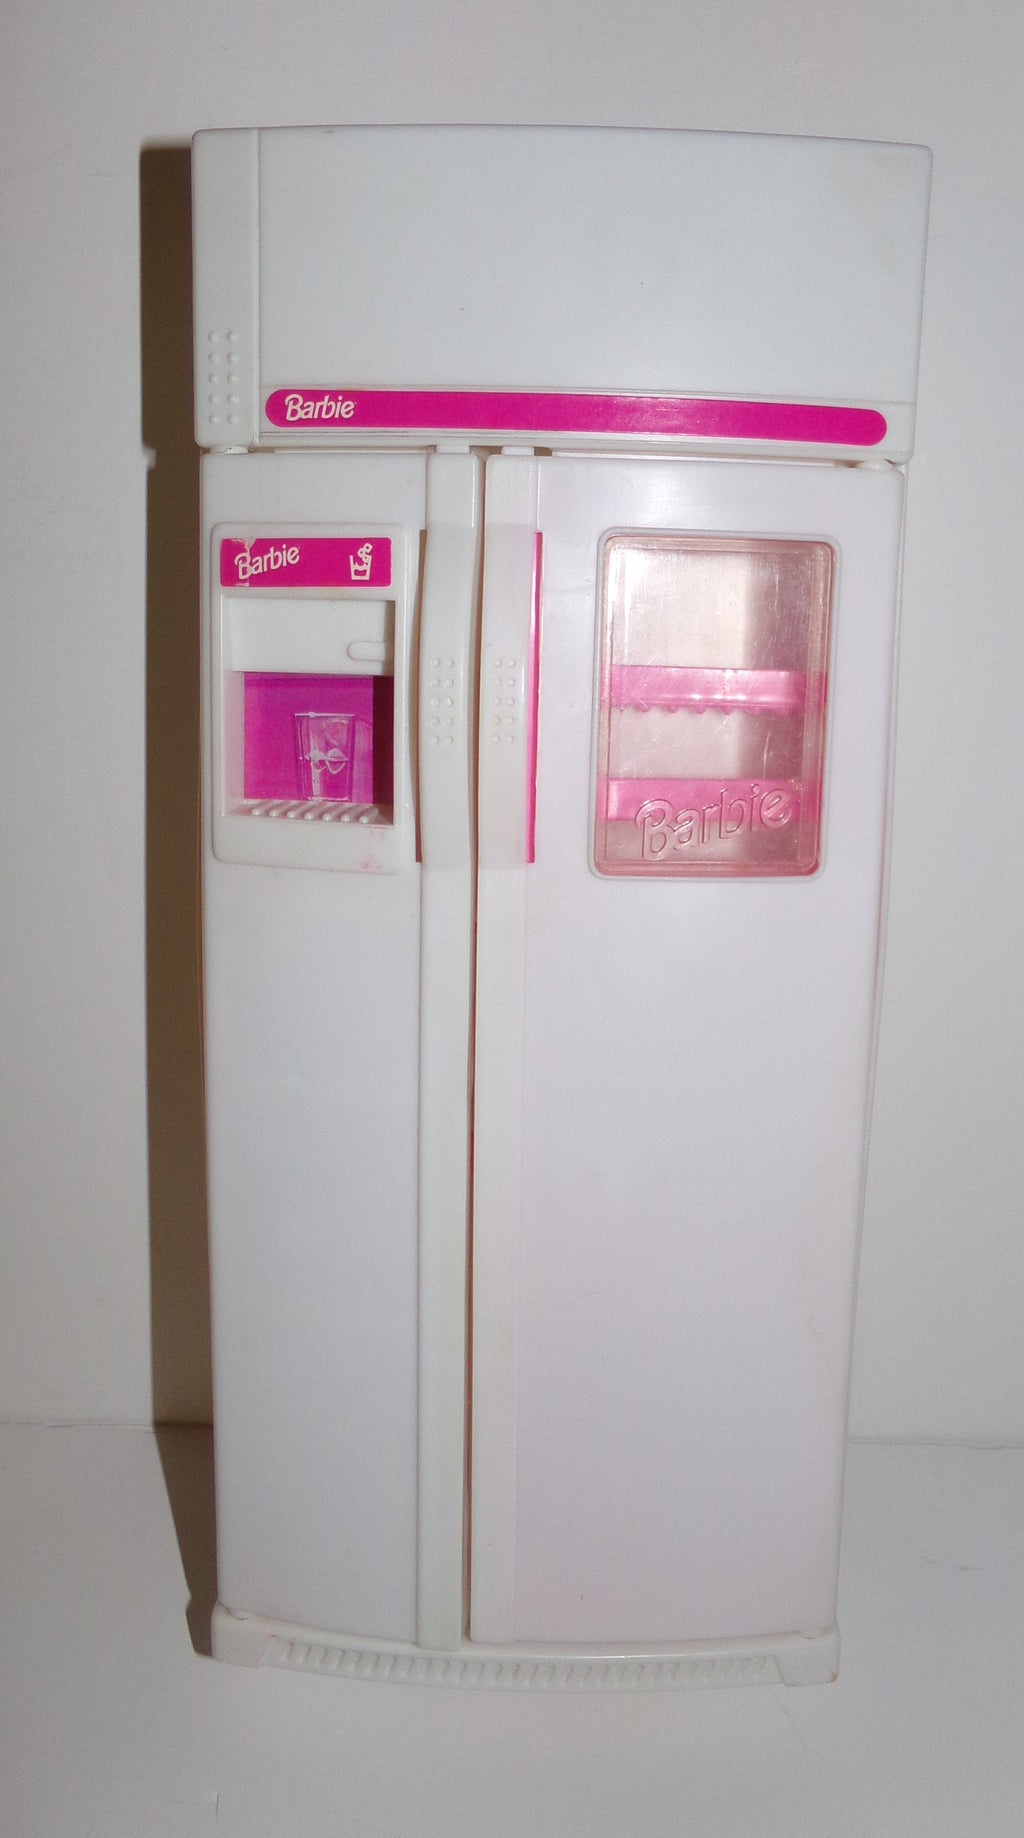 Barbie Doll House Refrigerator Furniture-We Got Character